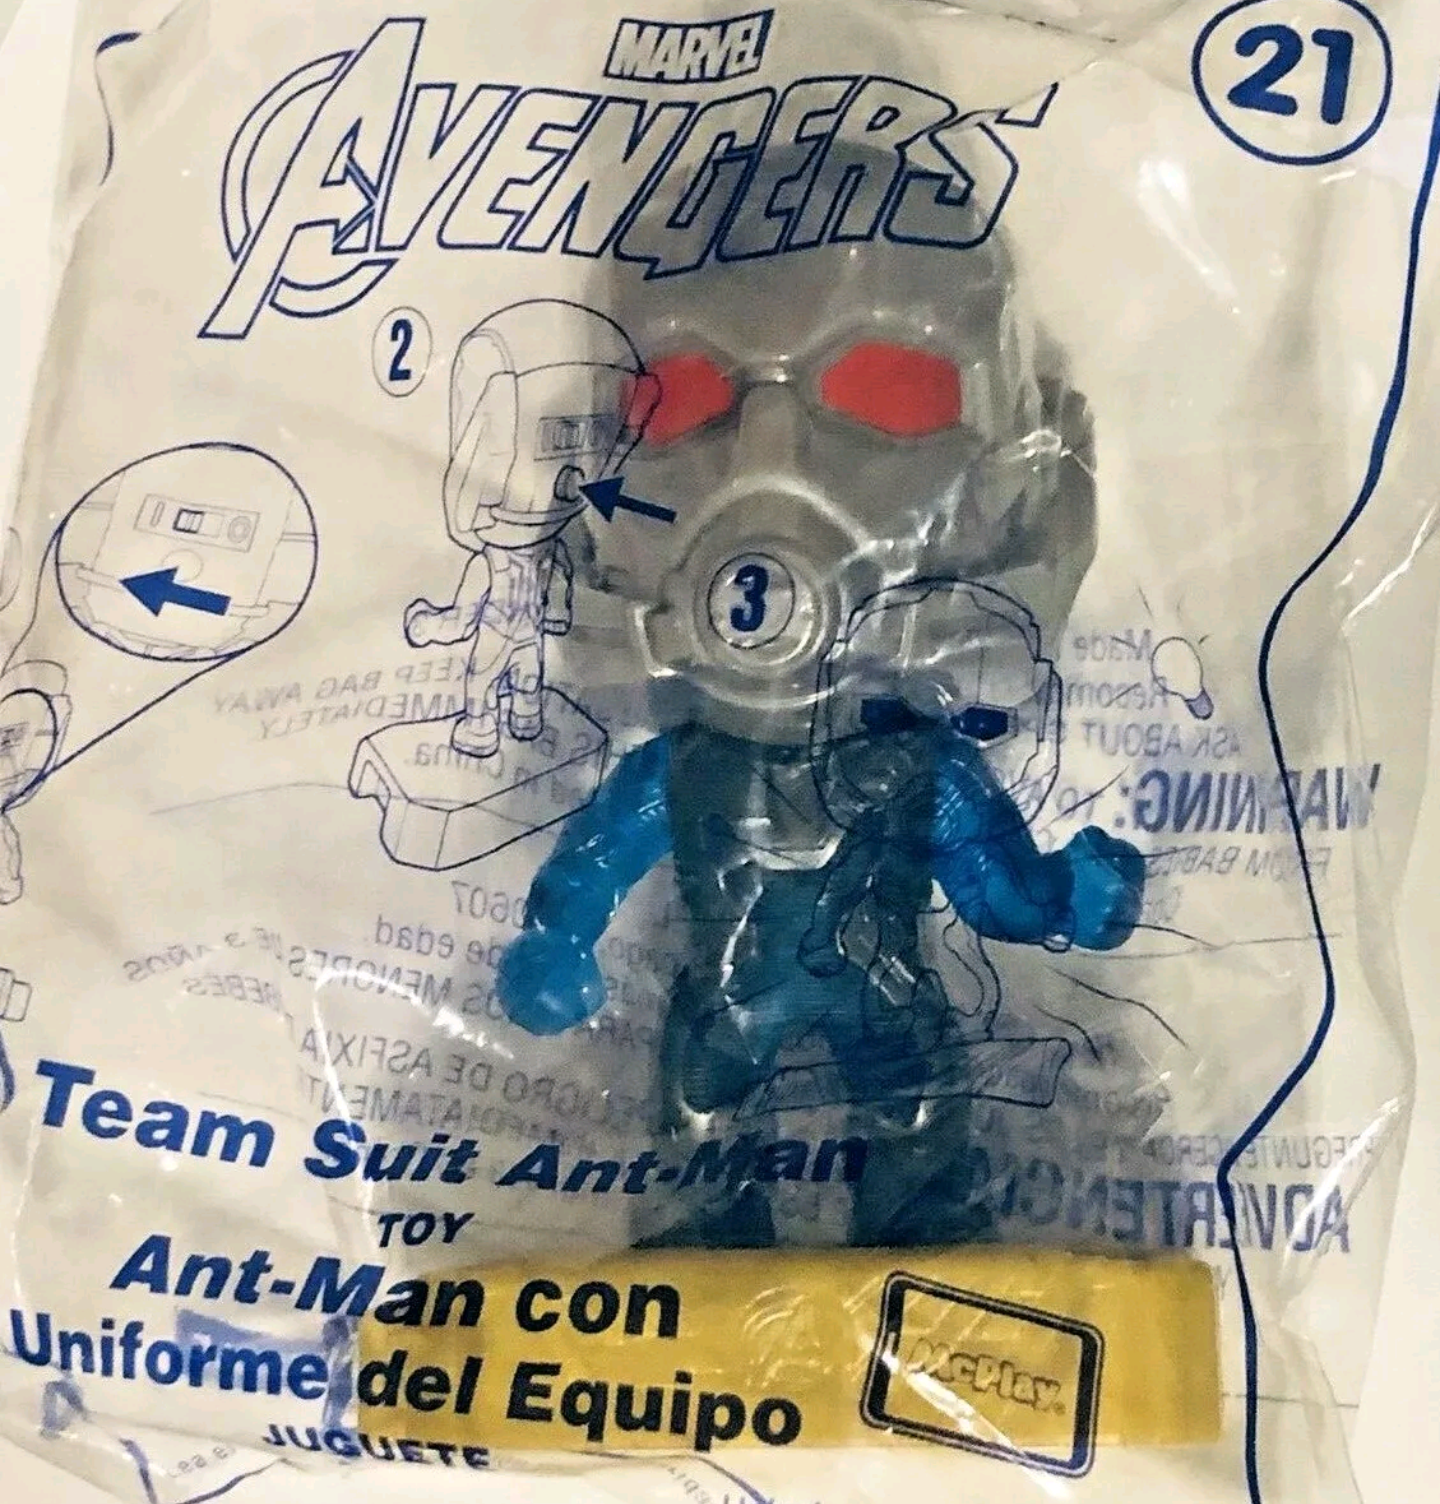 McDonalds 2019 Marvel Avengers Happy Meal Toy - Brand New in Sealed Package #21 Team Suit Ant-Man